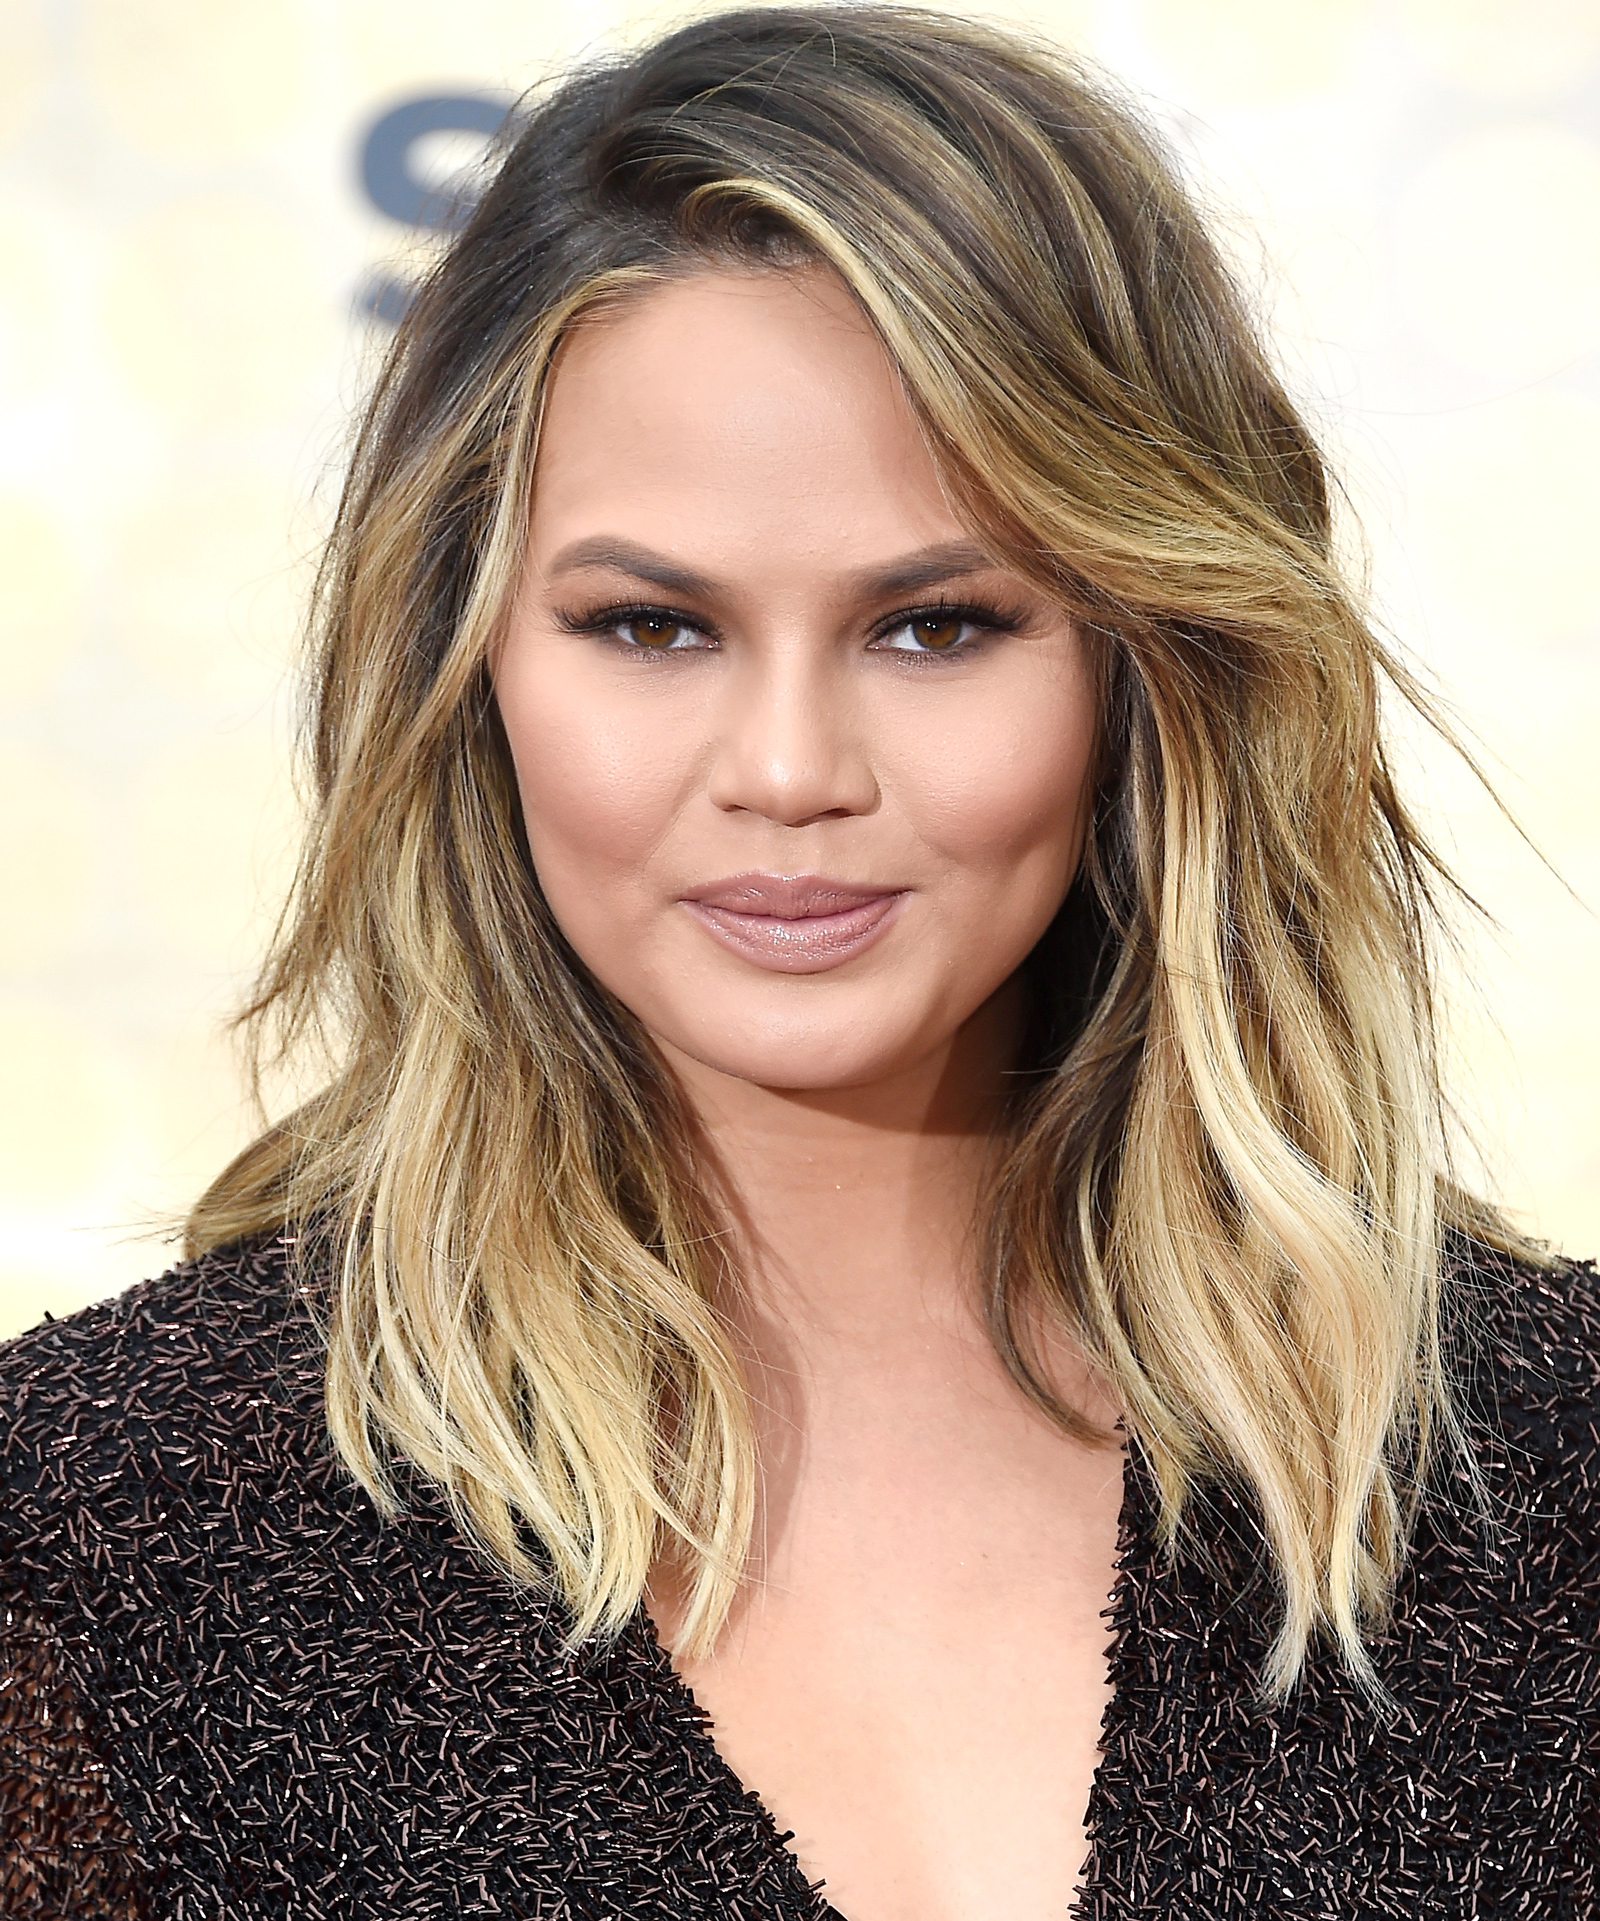 Chrissy Teigen Rocks Retro Waves and Denim Short-Shorts in L.A.